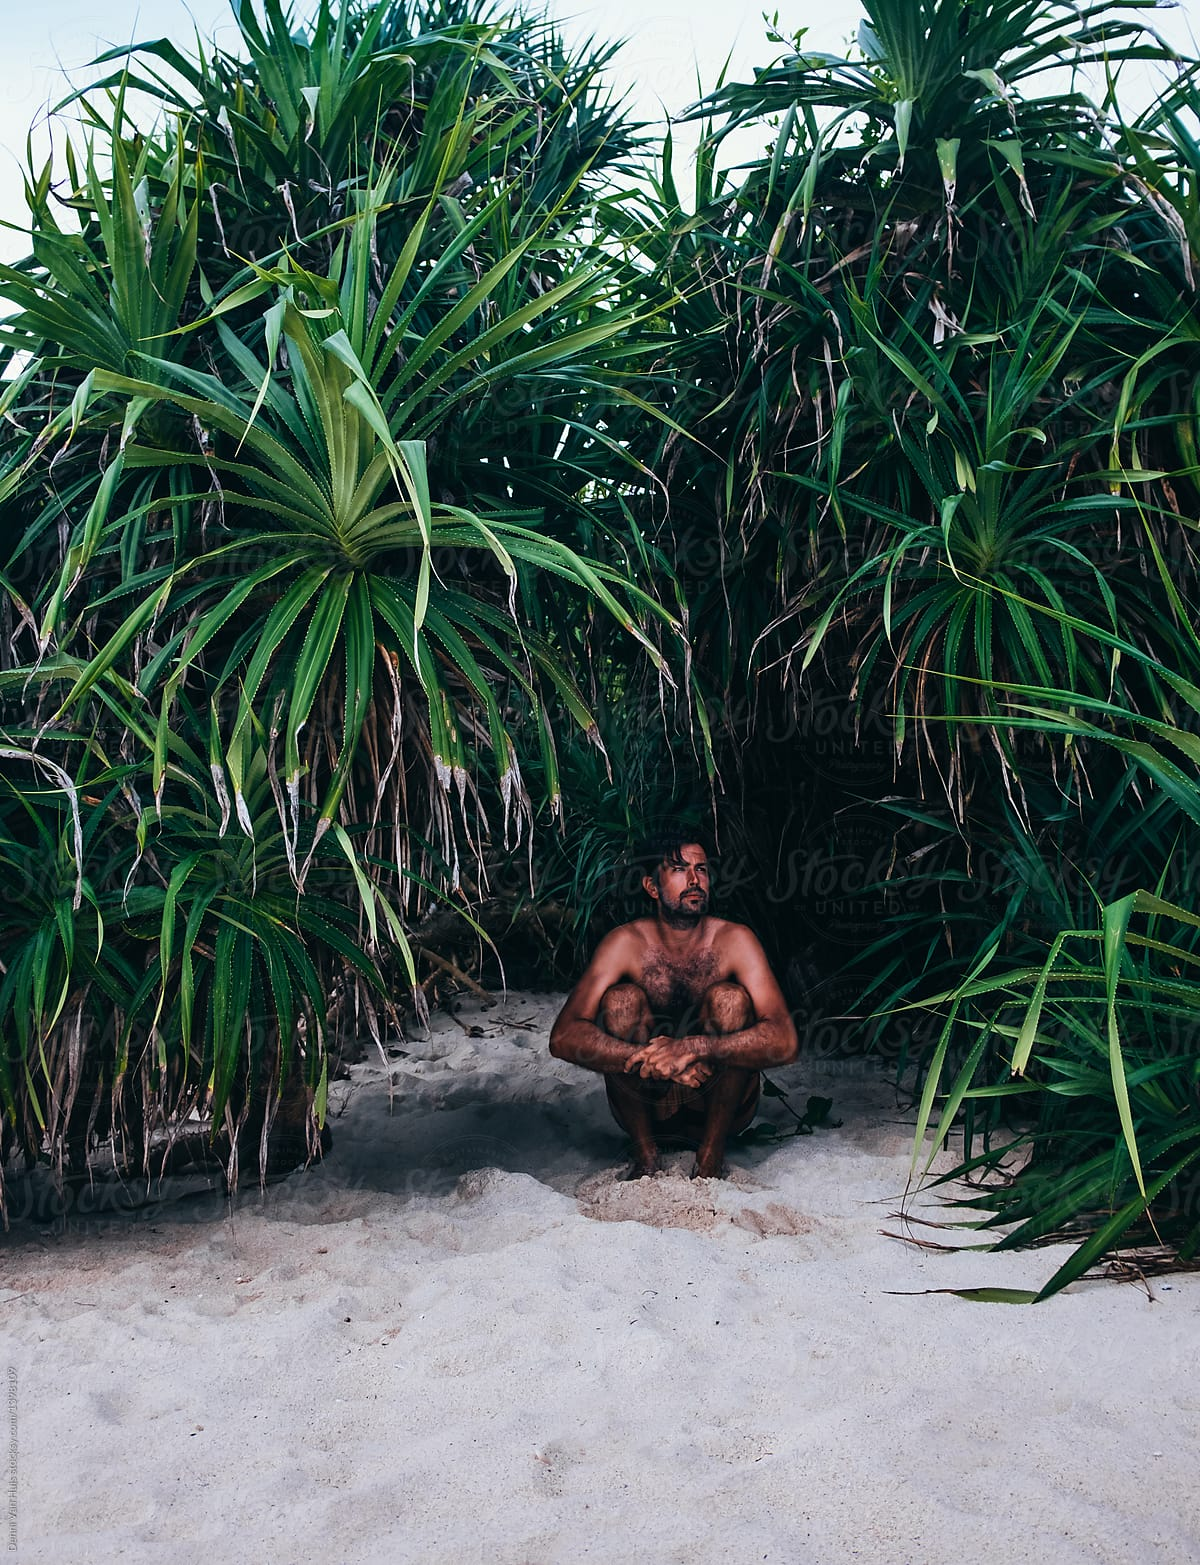 Man Finding Shelter In The Shade Under Tropical Plants On The